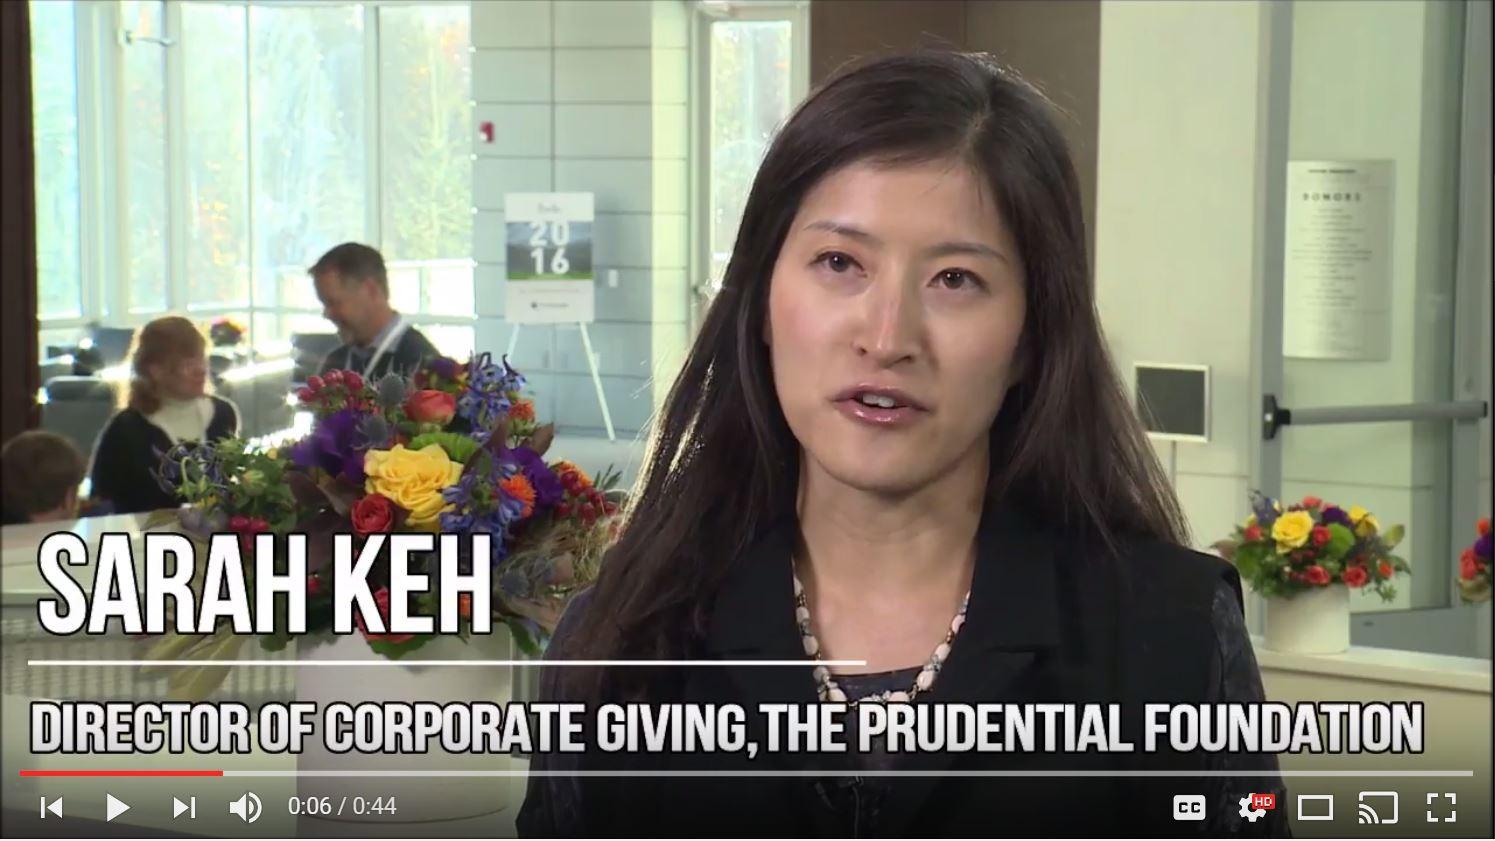 Sarah Keh on the Connection Between Work and Wealth